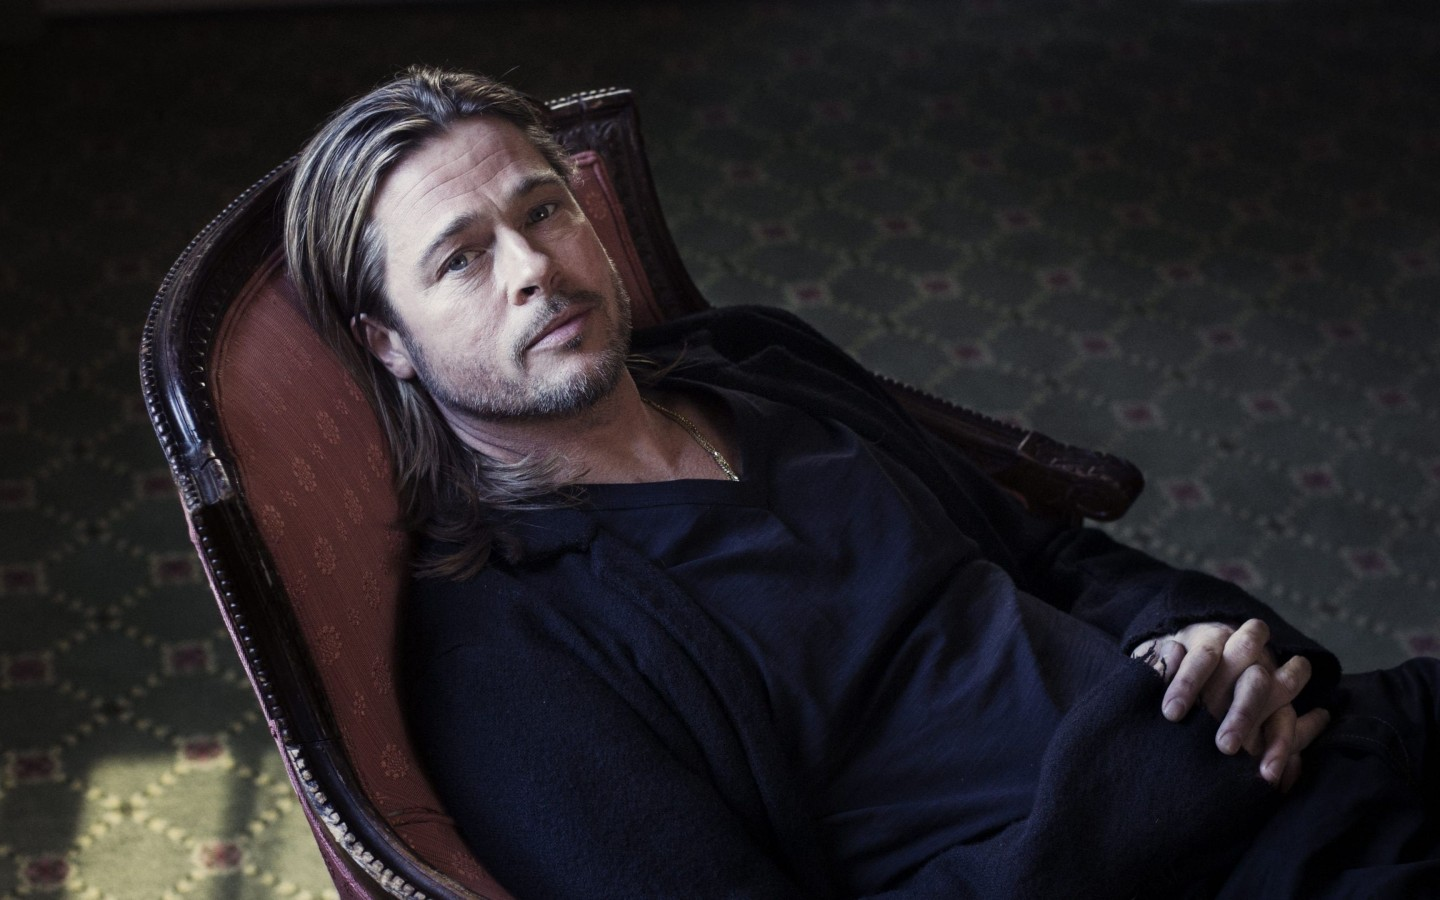 Brad Pitt Sitting On Chair Wallpaper for Desktop 1440x900